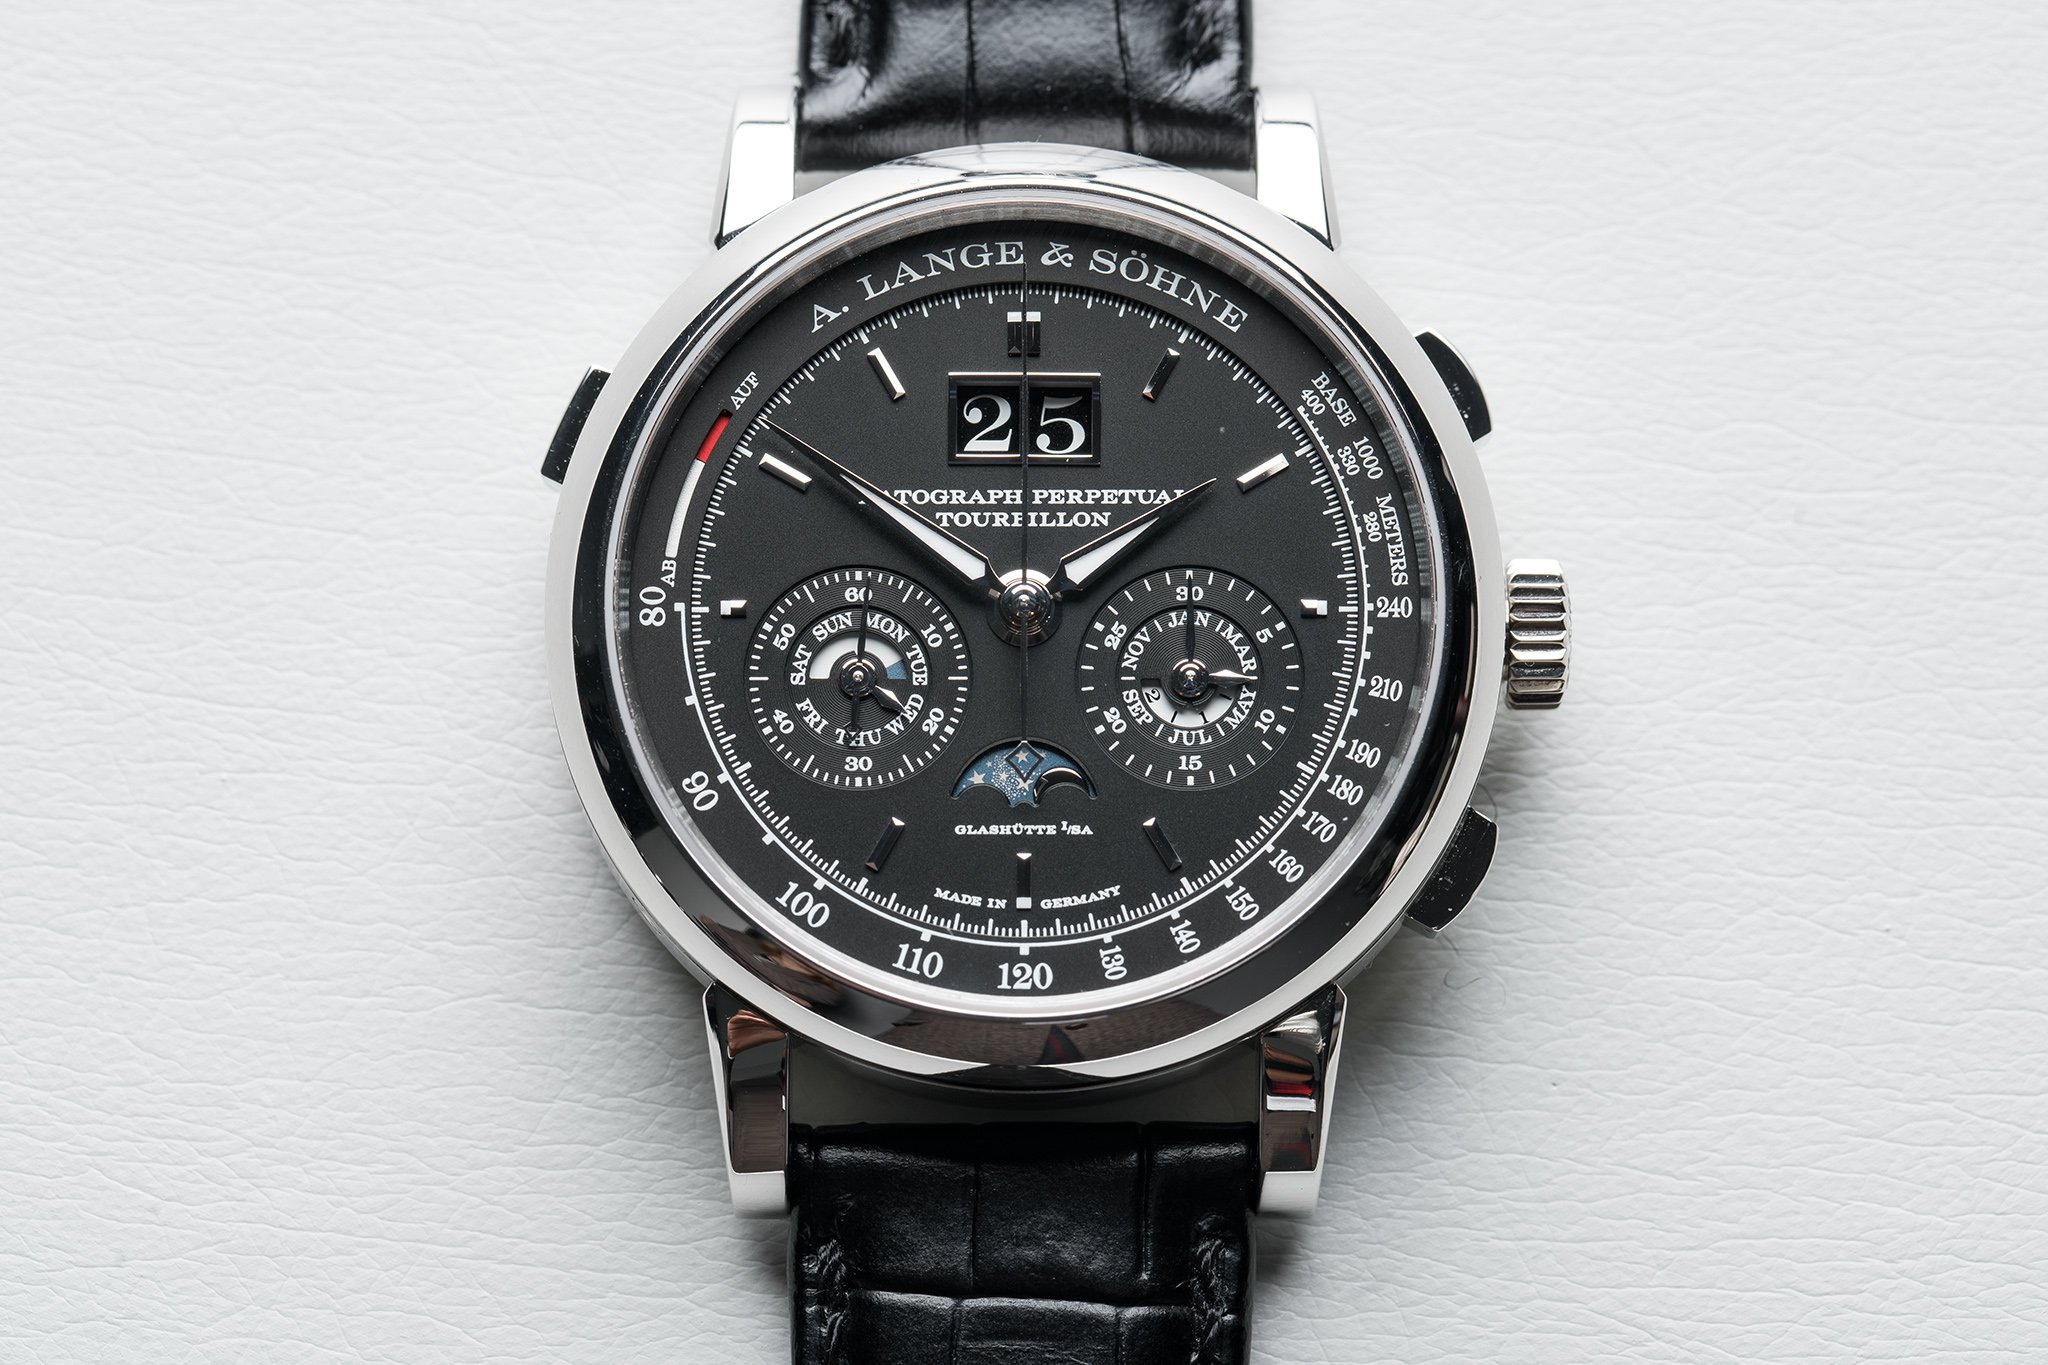 Take A Look At The Polished, Delicated A. Lange & Sohne Datograph Perpetual  Tourbillon